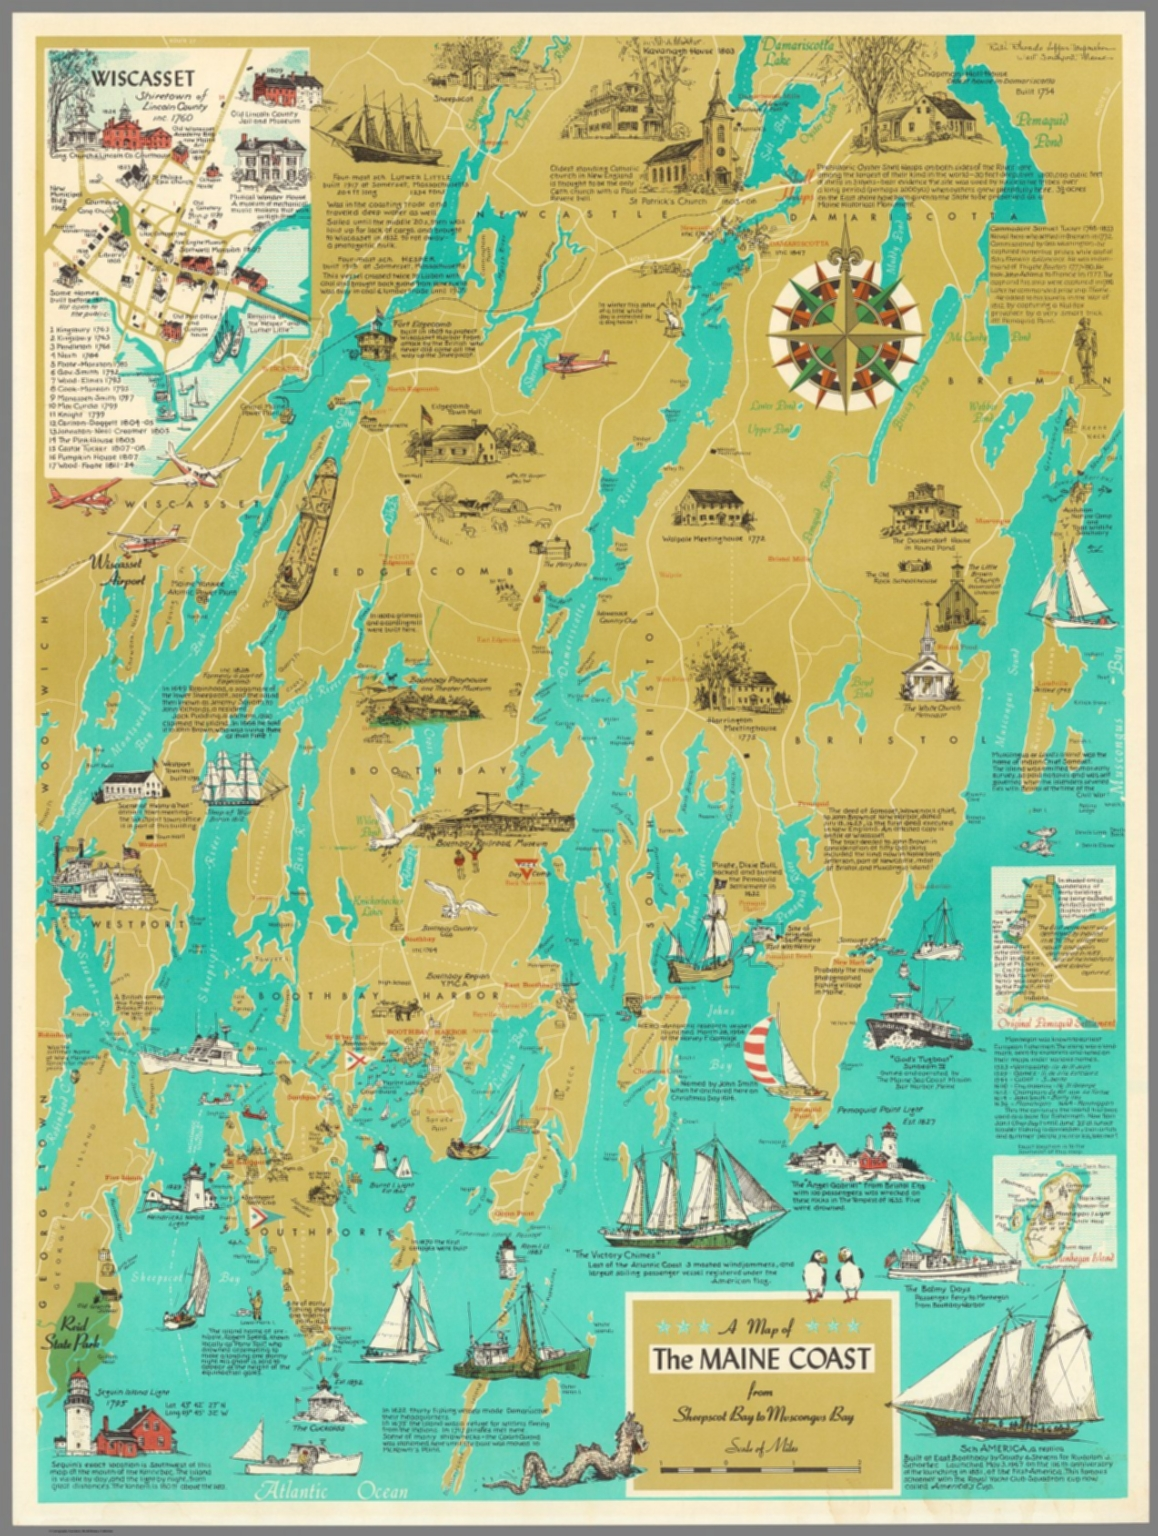 A Map of The Maine Coast from Sheepscot Bay to Muscongus Bay ... Map Maine Coast on maine school districts map, acadia maine map, blue hill maine map, midcoast maine map, state of maine map, maine bay map, gorham maine street map, maine western map, maine woods map, maine storm map, maine east map, camden maine map, maine harbor map, maine oregon map, maine desert map, maine north map, new orleans map, maine mall portland maine map, maine map with latitude and longitude, bar harbor map,